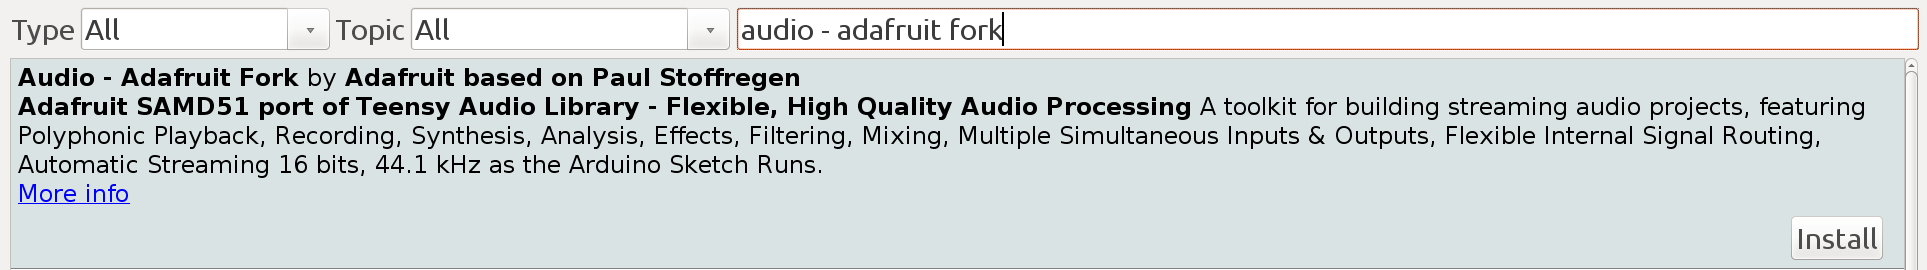 adafruit_products_audio.png